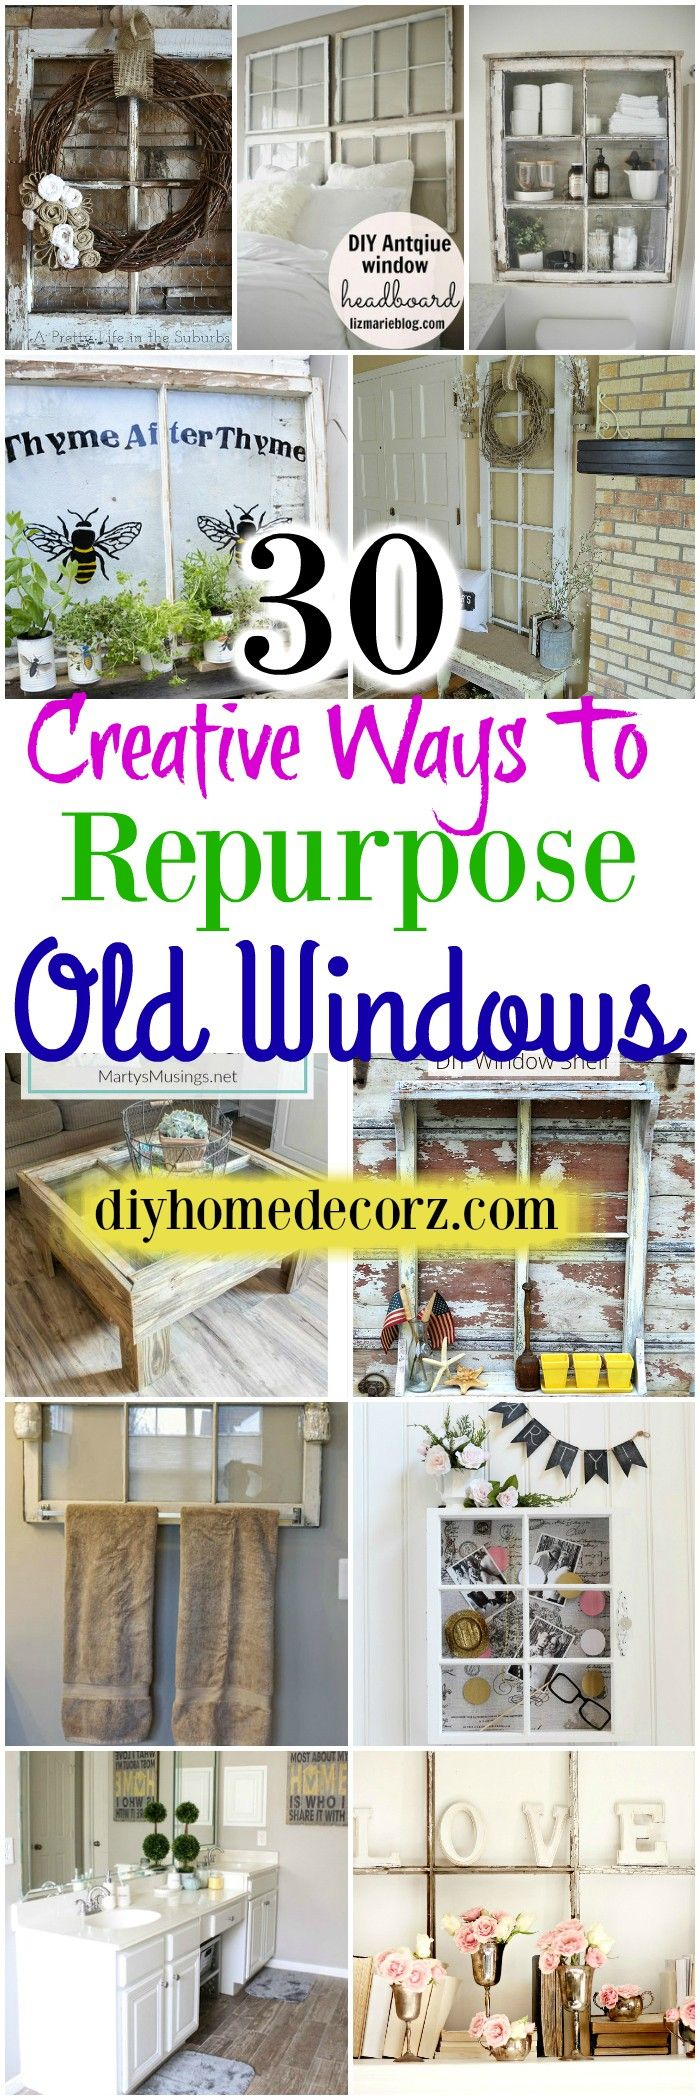 I am going to show you 30 creative ways to repurpose #oldwindows for your home.you will learn how you can bring in use old windows.